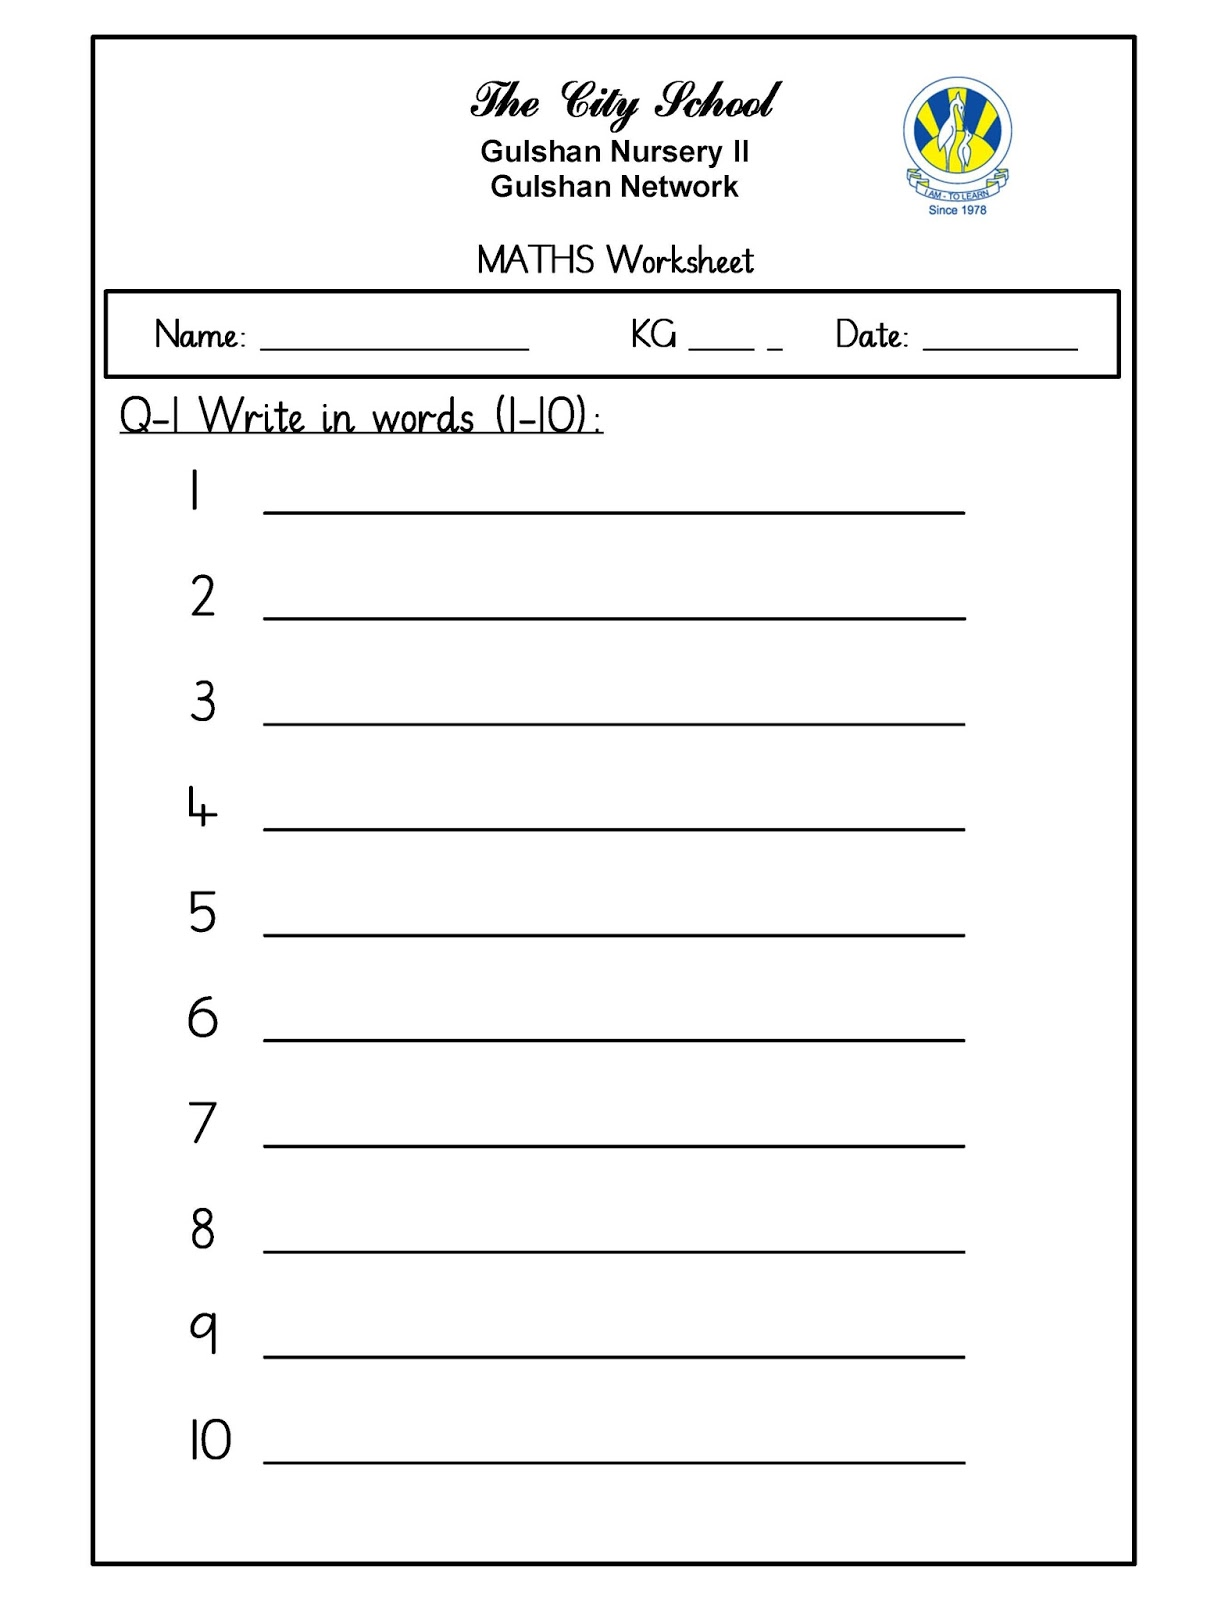 Sr Gulshan The City Nursery Ii Worksheets Maths